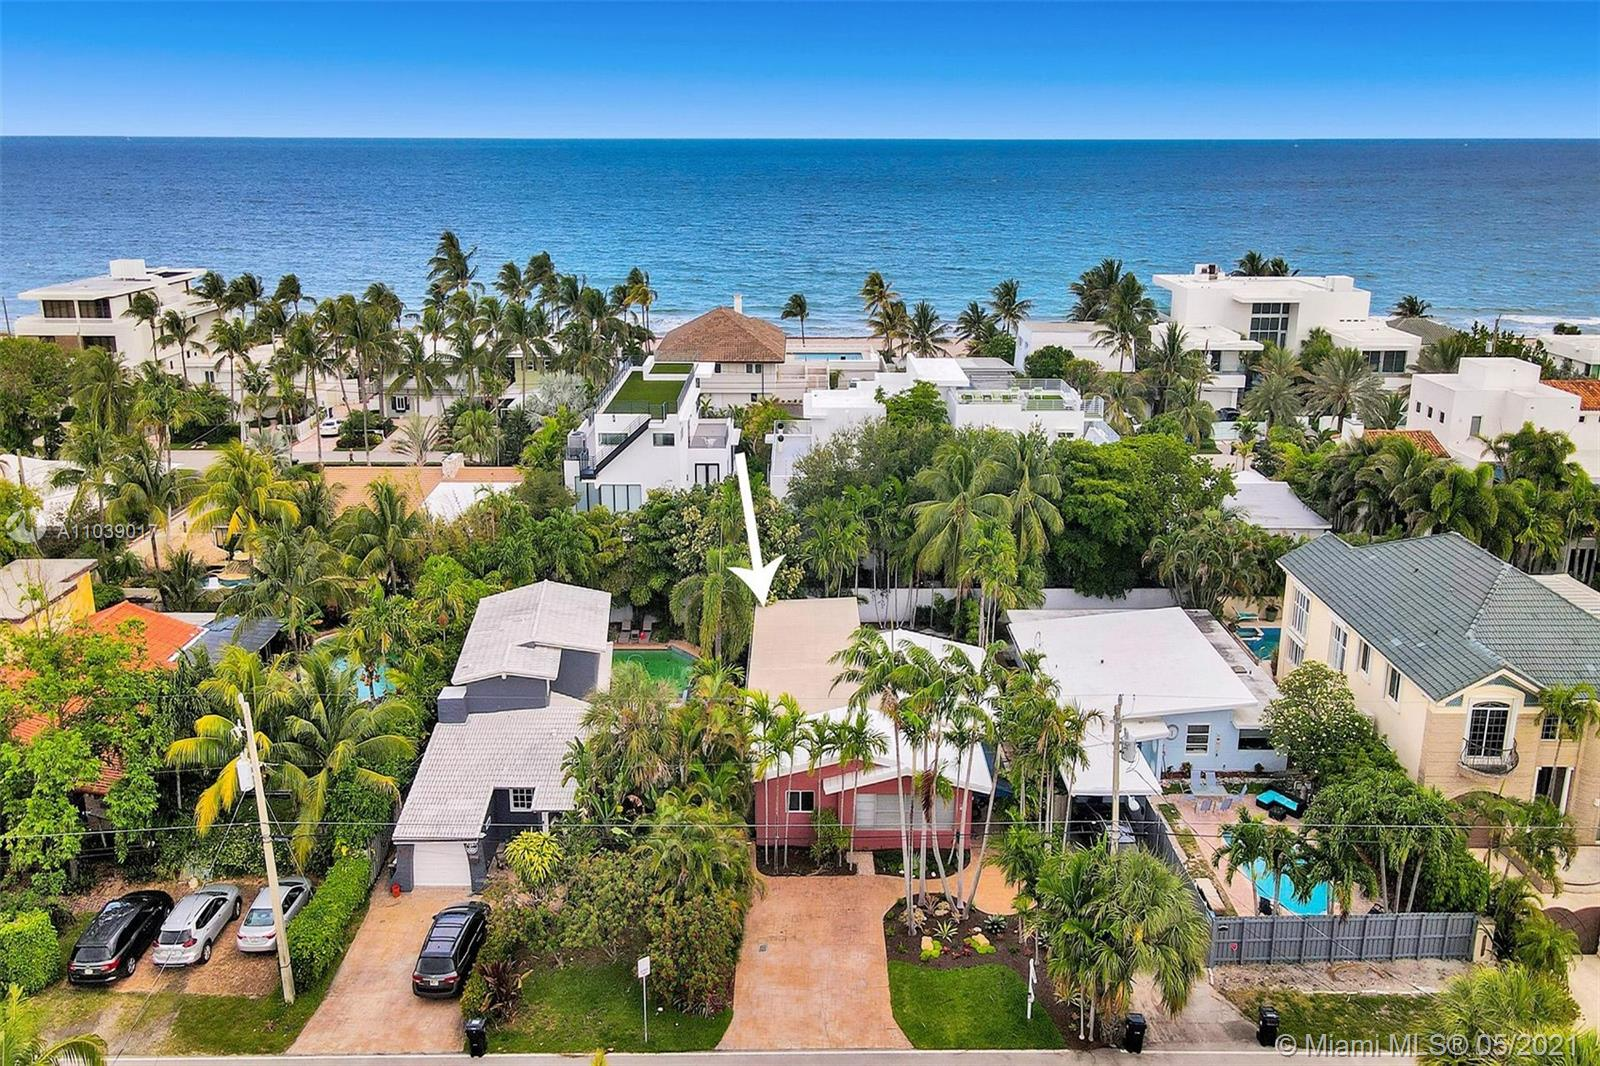 SUN, SURF & SAND. MOST PEOPLE JUST DREAM ABOUT LIVING THIS CLOSE TO THE BEACH...WELL, NOW YOU CAN. HOMES RARELY COME AVAILABLE IN THIS MOST AMAZING & UNIQUE COMMUNITY OF LAUDERDALE BEACH. 2522 CENTER AVE IS LITERALLY STEPS FROM THE OCEAN, BUT ALONG W/ THIS GREAT LOCATION THE HOME OFFERS YOU THE COMFORT & SPACE FOR ANY LARGE GATHERING. OVER 1900 SQFT OF LIVING SPACE W/ HIGH VOL 10FT CEILINGS THROUGHOUT, 2 LIVING AREAS, TRUE DINING & AN OPEN KITCHEN. SPACIOUS BACKYARD FOR ENTERTAINING W/ PARTY-SIZE POOL. BEAUTIFUL FLORIDA TROPICALLY LANDSCAPING W/ WIDE DRIVEWAY TO HOLD OVER GUEST VISITING YOUR OCEAN HIDEAWAY. TAKE THE INVESTMENT TO UPDATE THIS HOME TO YOUR OWN FOR YEARS TO COME OF ENJOYMENT. LIFE IS TOO SHORT TO WAIT, DON'T PASS ON THIS OPPORTUNITY OF A LIFETIME. THE OCEAN IS CALLING.